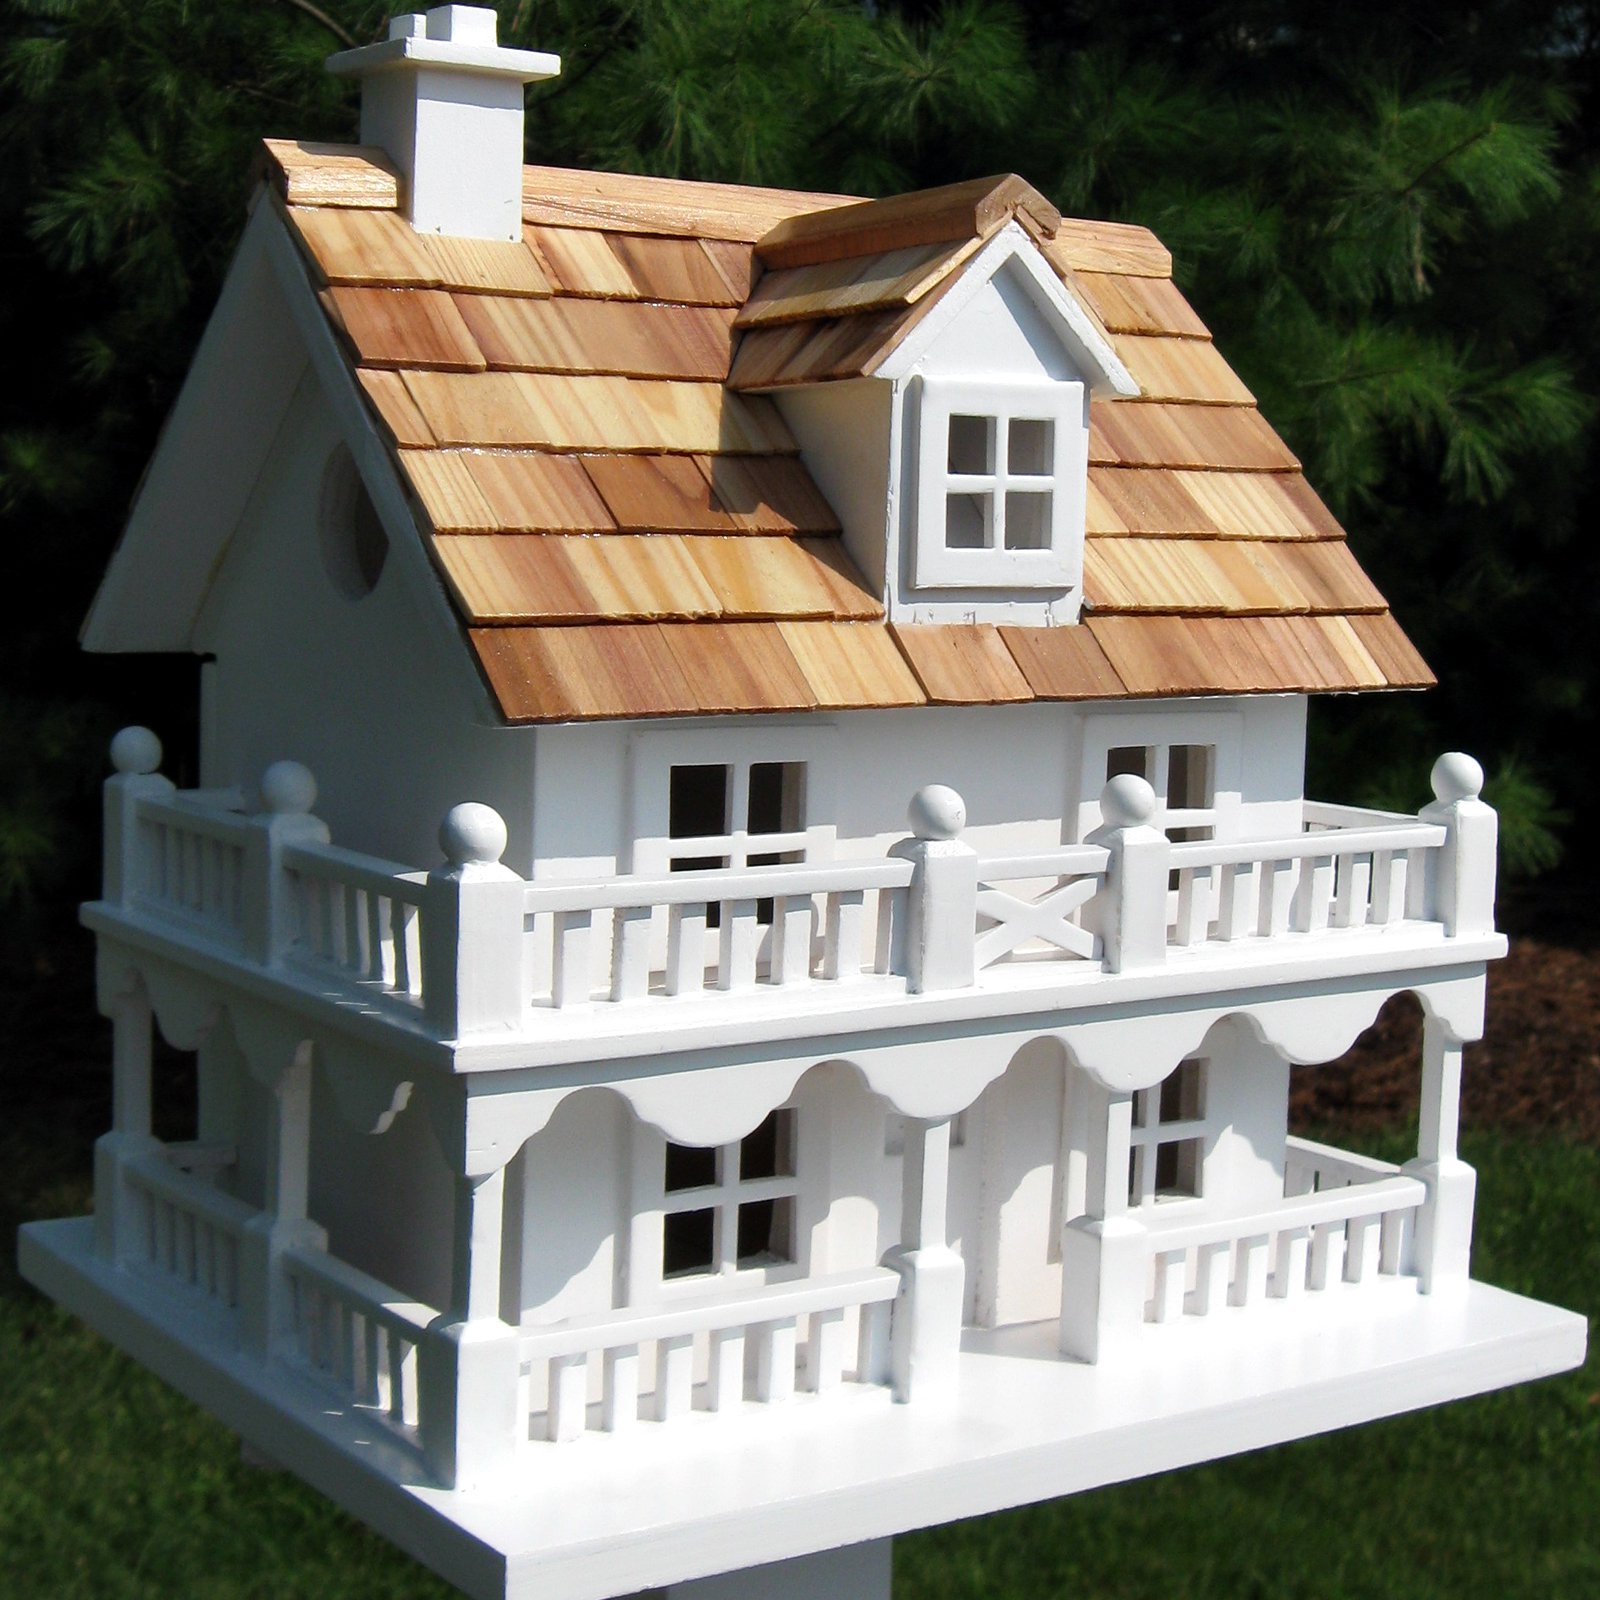 Home Bazaar Novelty Cottage Birdhouse by Home Bazaar Inc